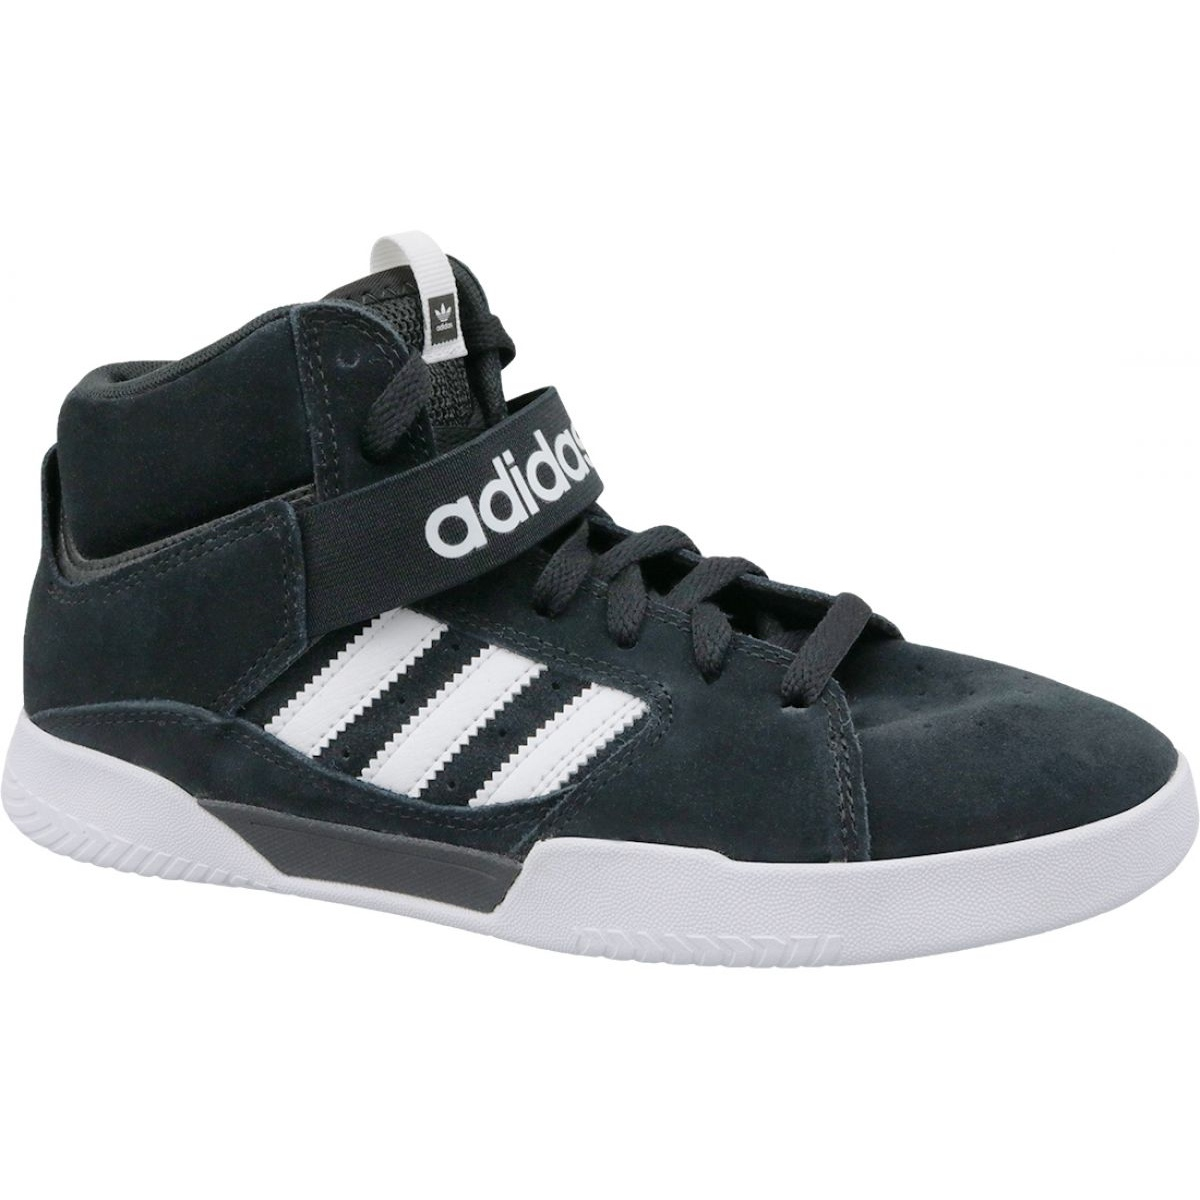 Details about Adidas Vrx Mid M EE6236 shoes black